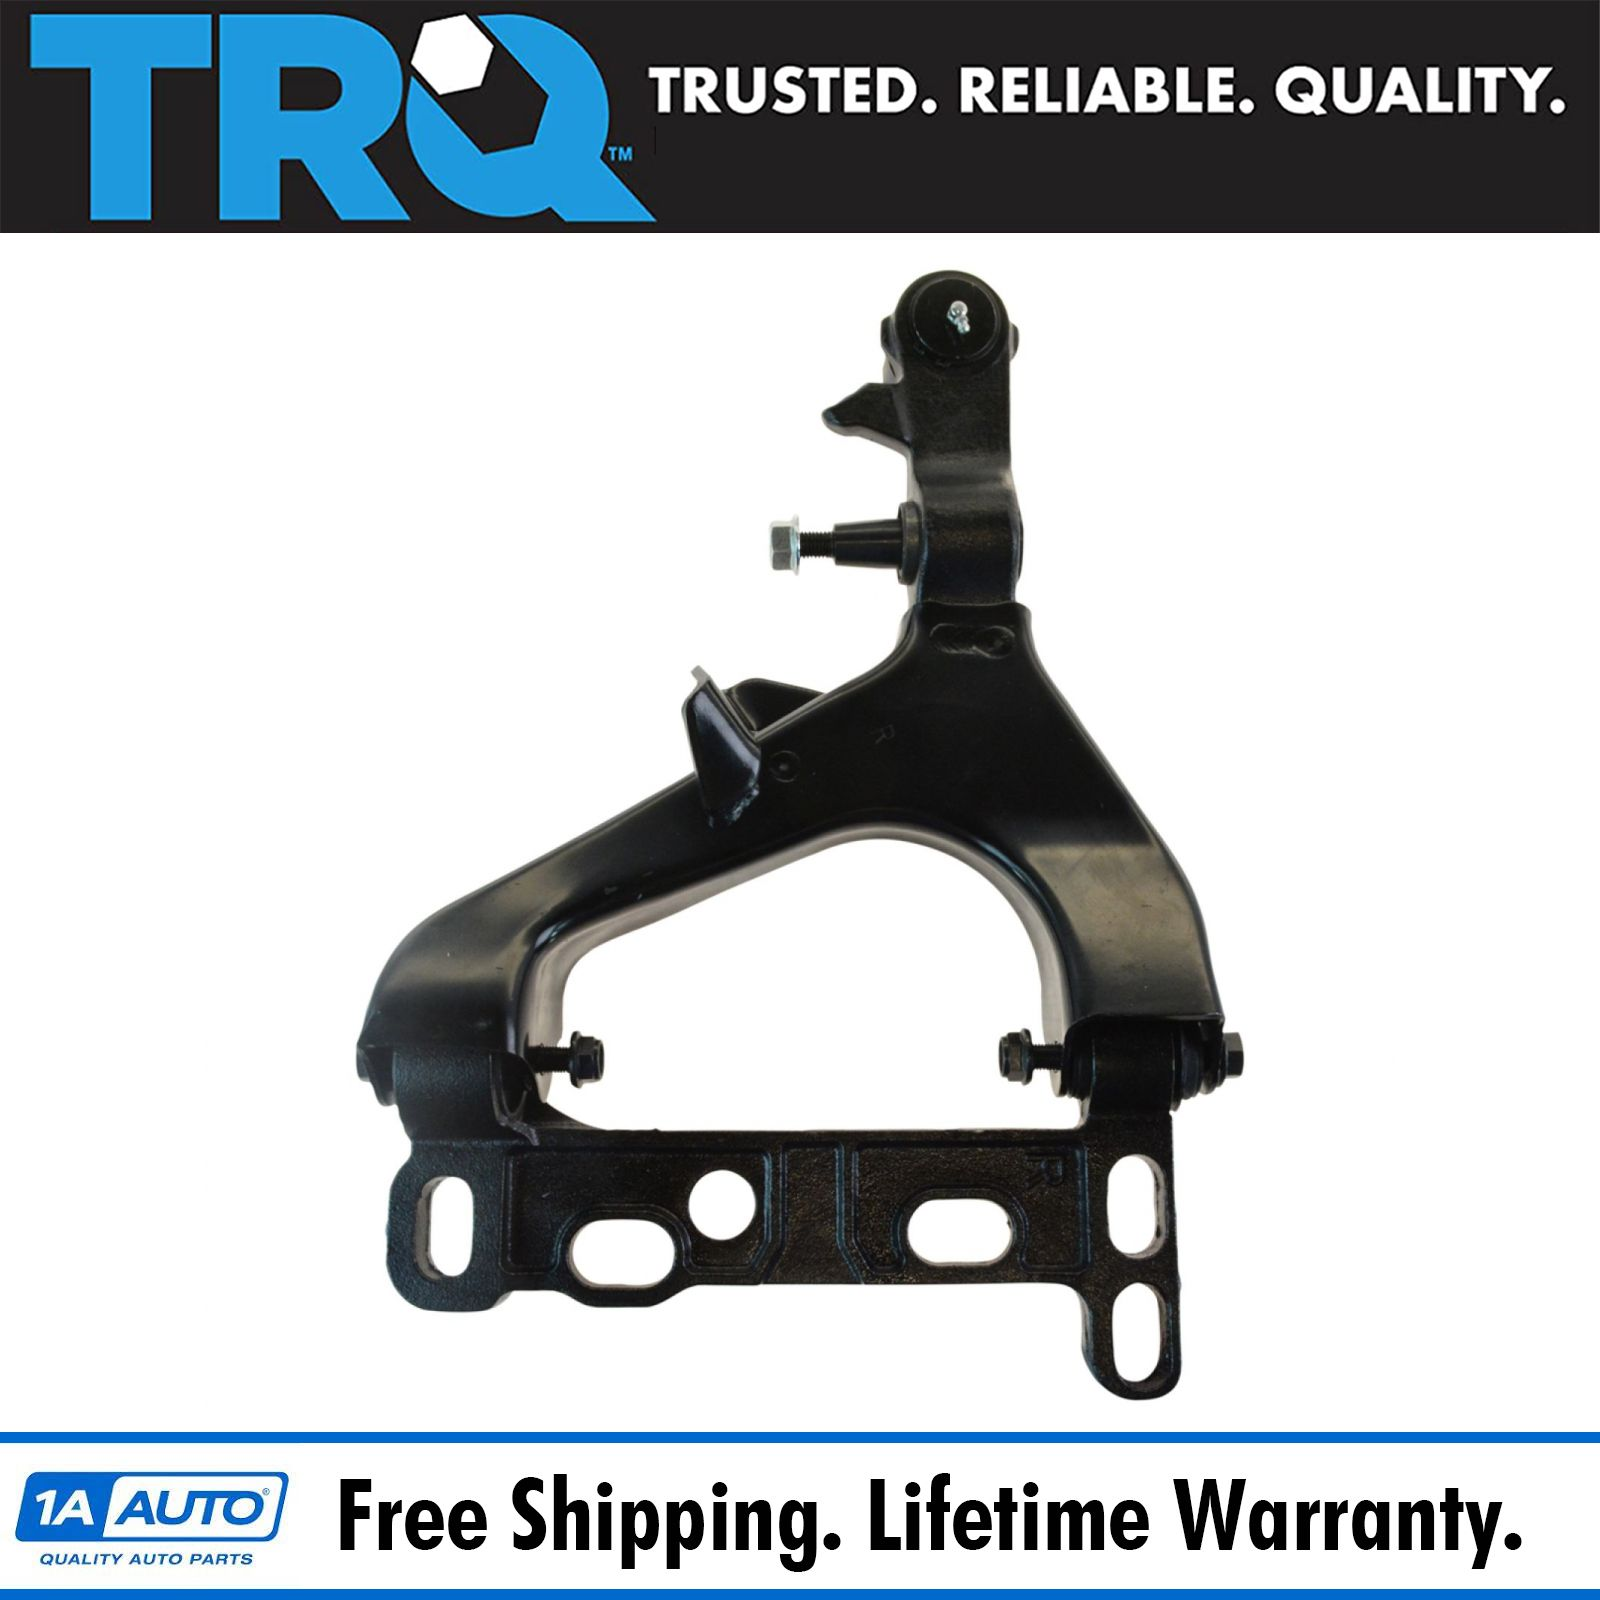 2005 Buick Rainier Rear Air Suspension: Front Lower Control Arm W/ Ball Joint & Bracket Passenger